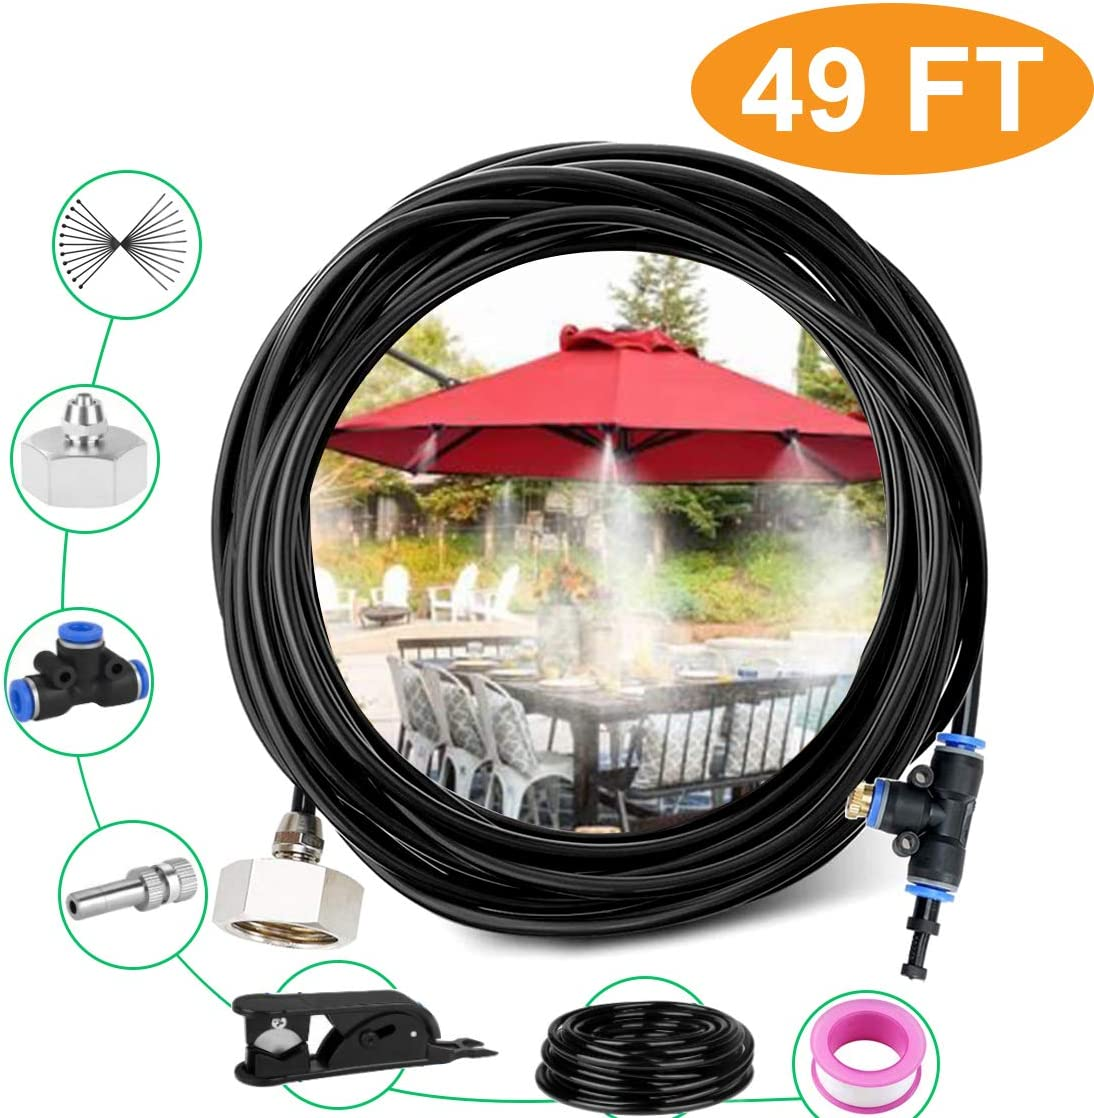 Risunpet Outdoor Misting Cooling System 49.2FT(15M) Misting Line 15 Copper Mist Nozzles and A Connector(3/4) for Patio Misting System Fan Outdoor Mist Kit Canopy Misting System Trampoline